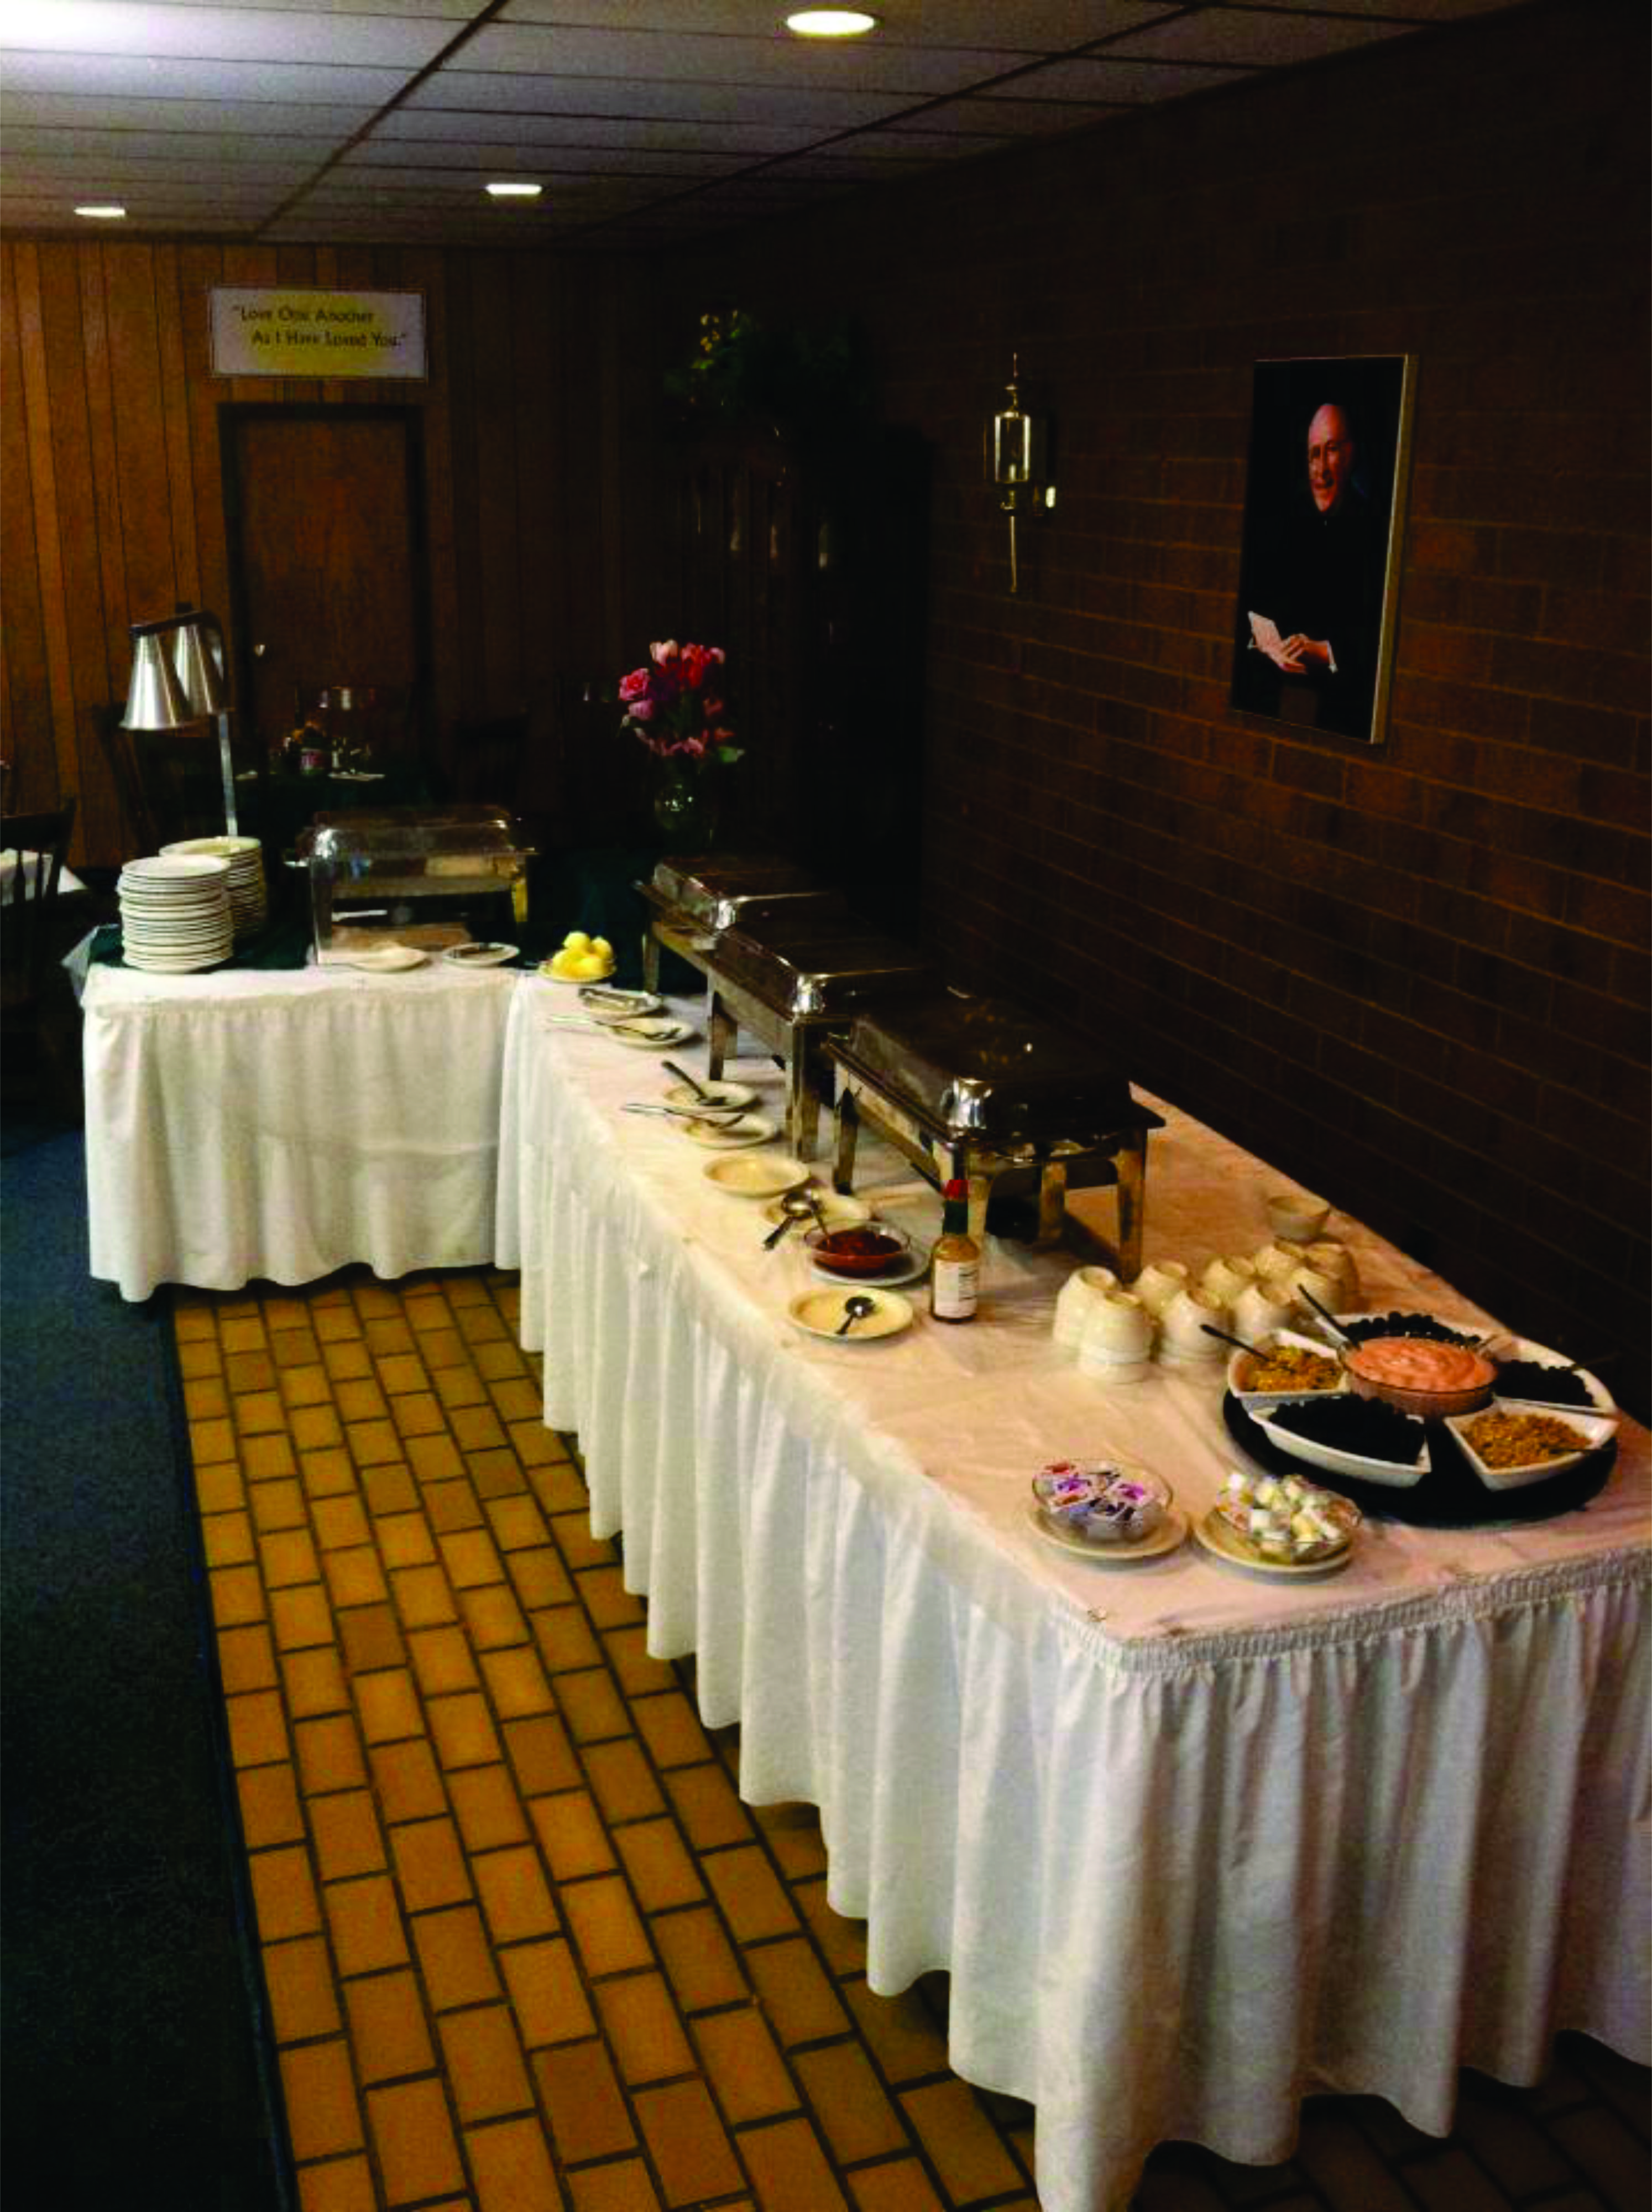 Breakfast Banquets Catering Menu Mile High Catering